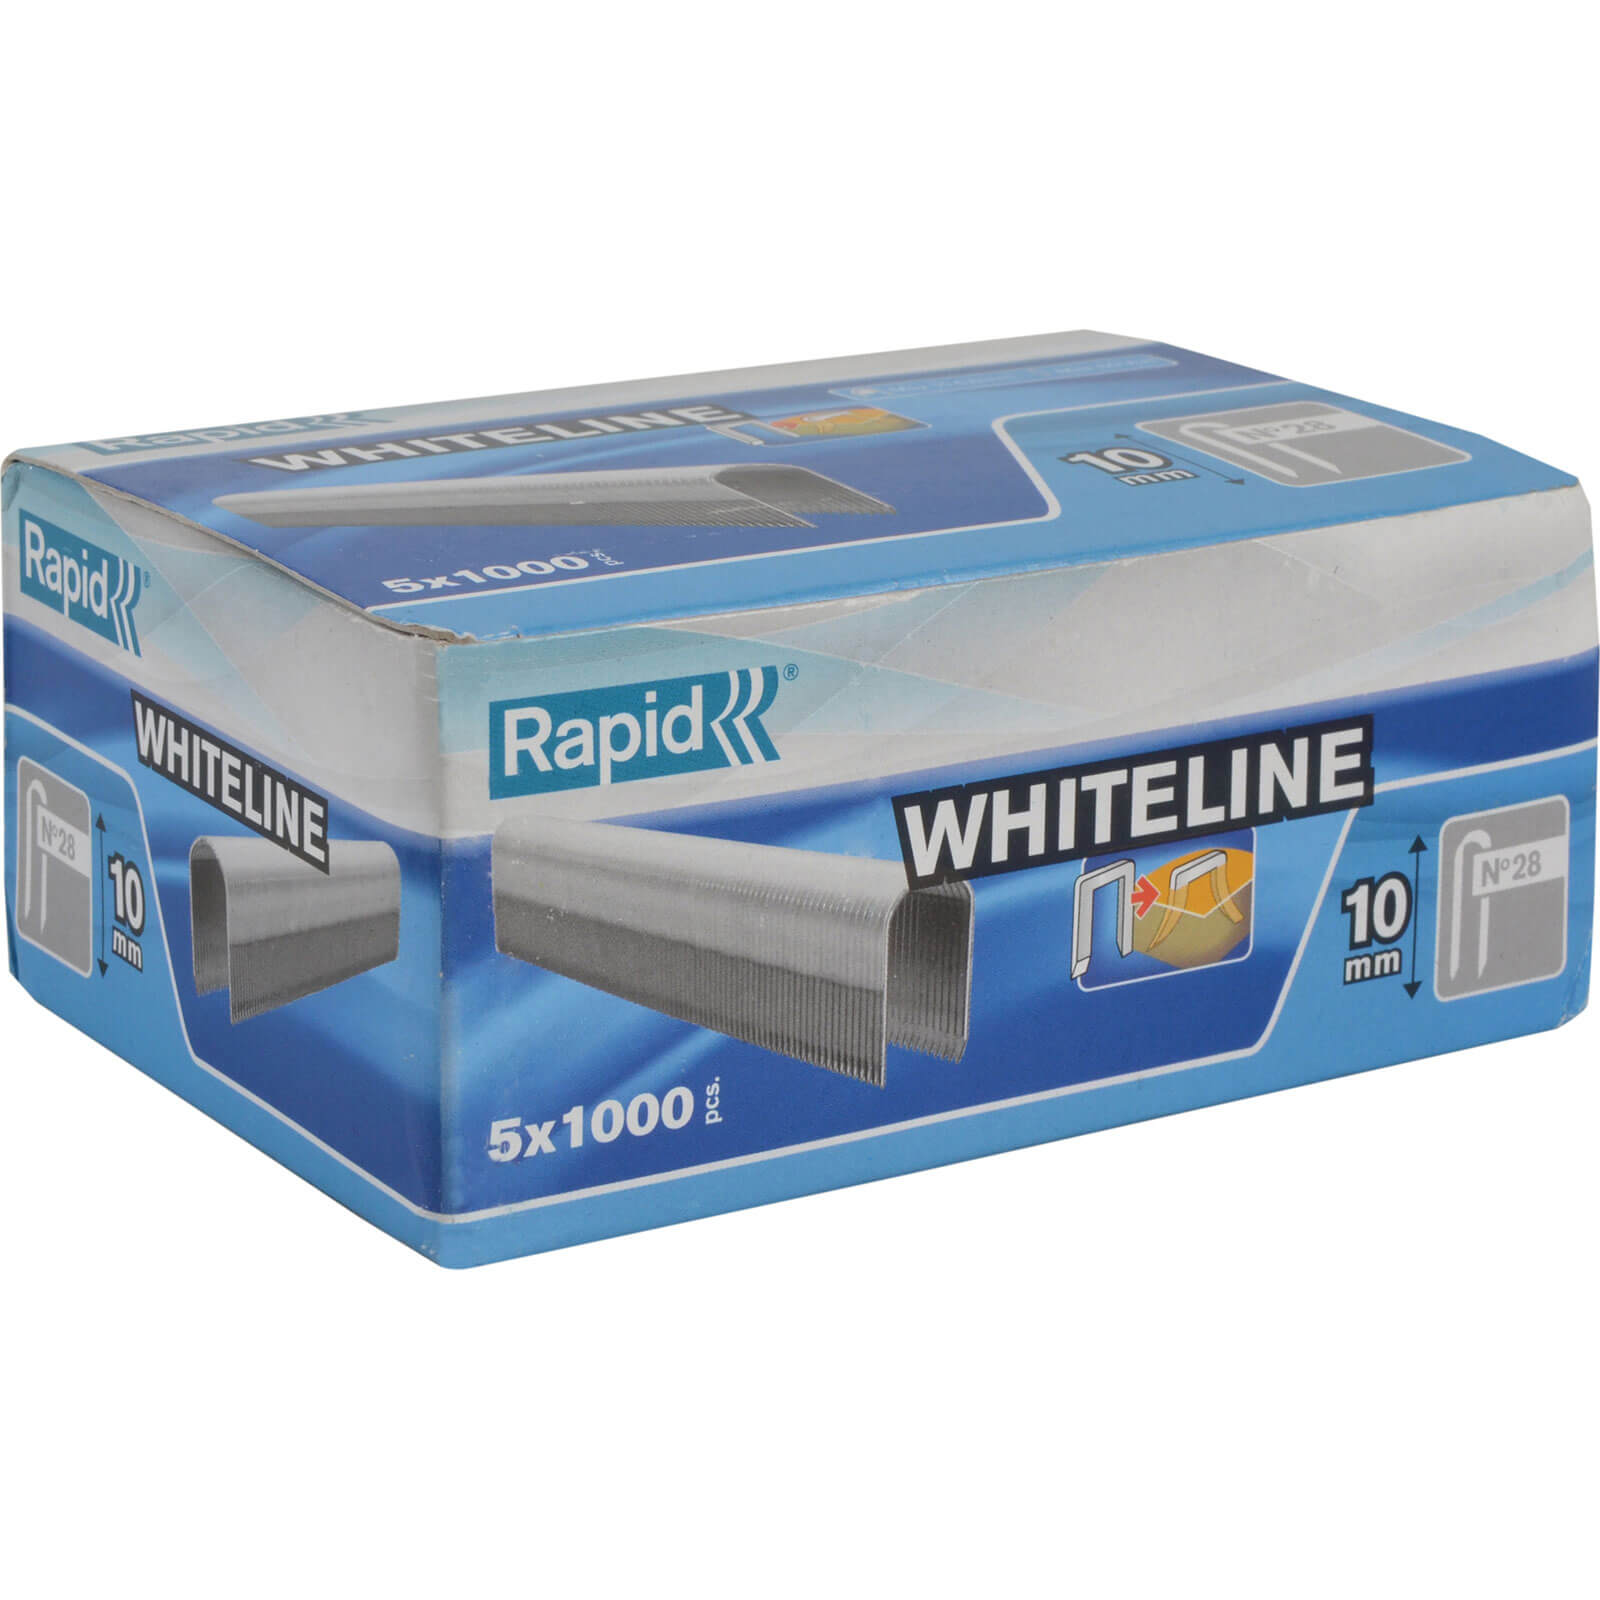 Image of Rapid 28 White Staples 10mm Pack of 5000